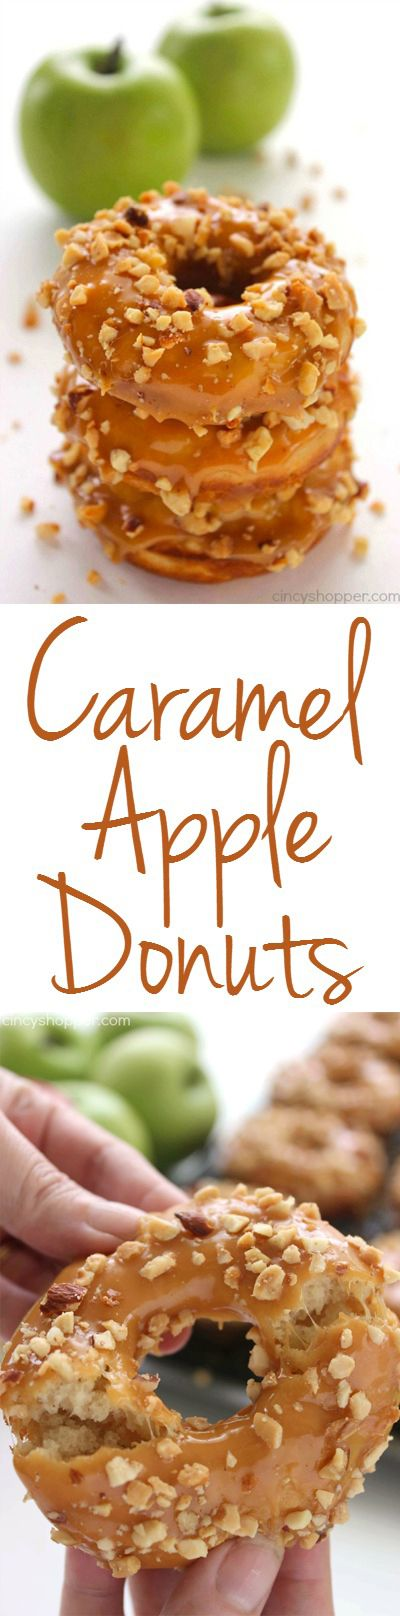 Caramel Apple Donuts Caramel Apple Donuts - Easy and delish donut idea for fall. Great for breakfast or dessert.